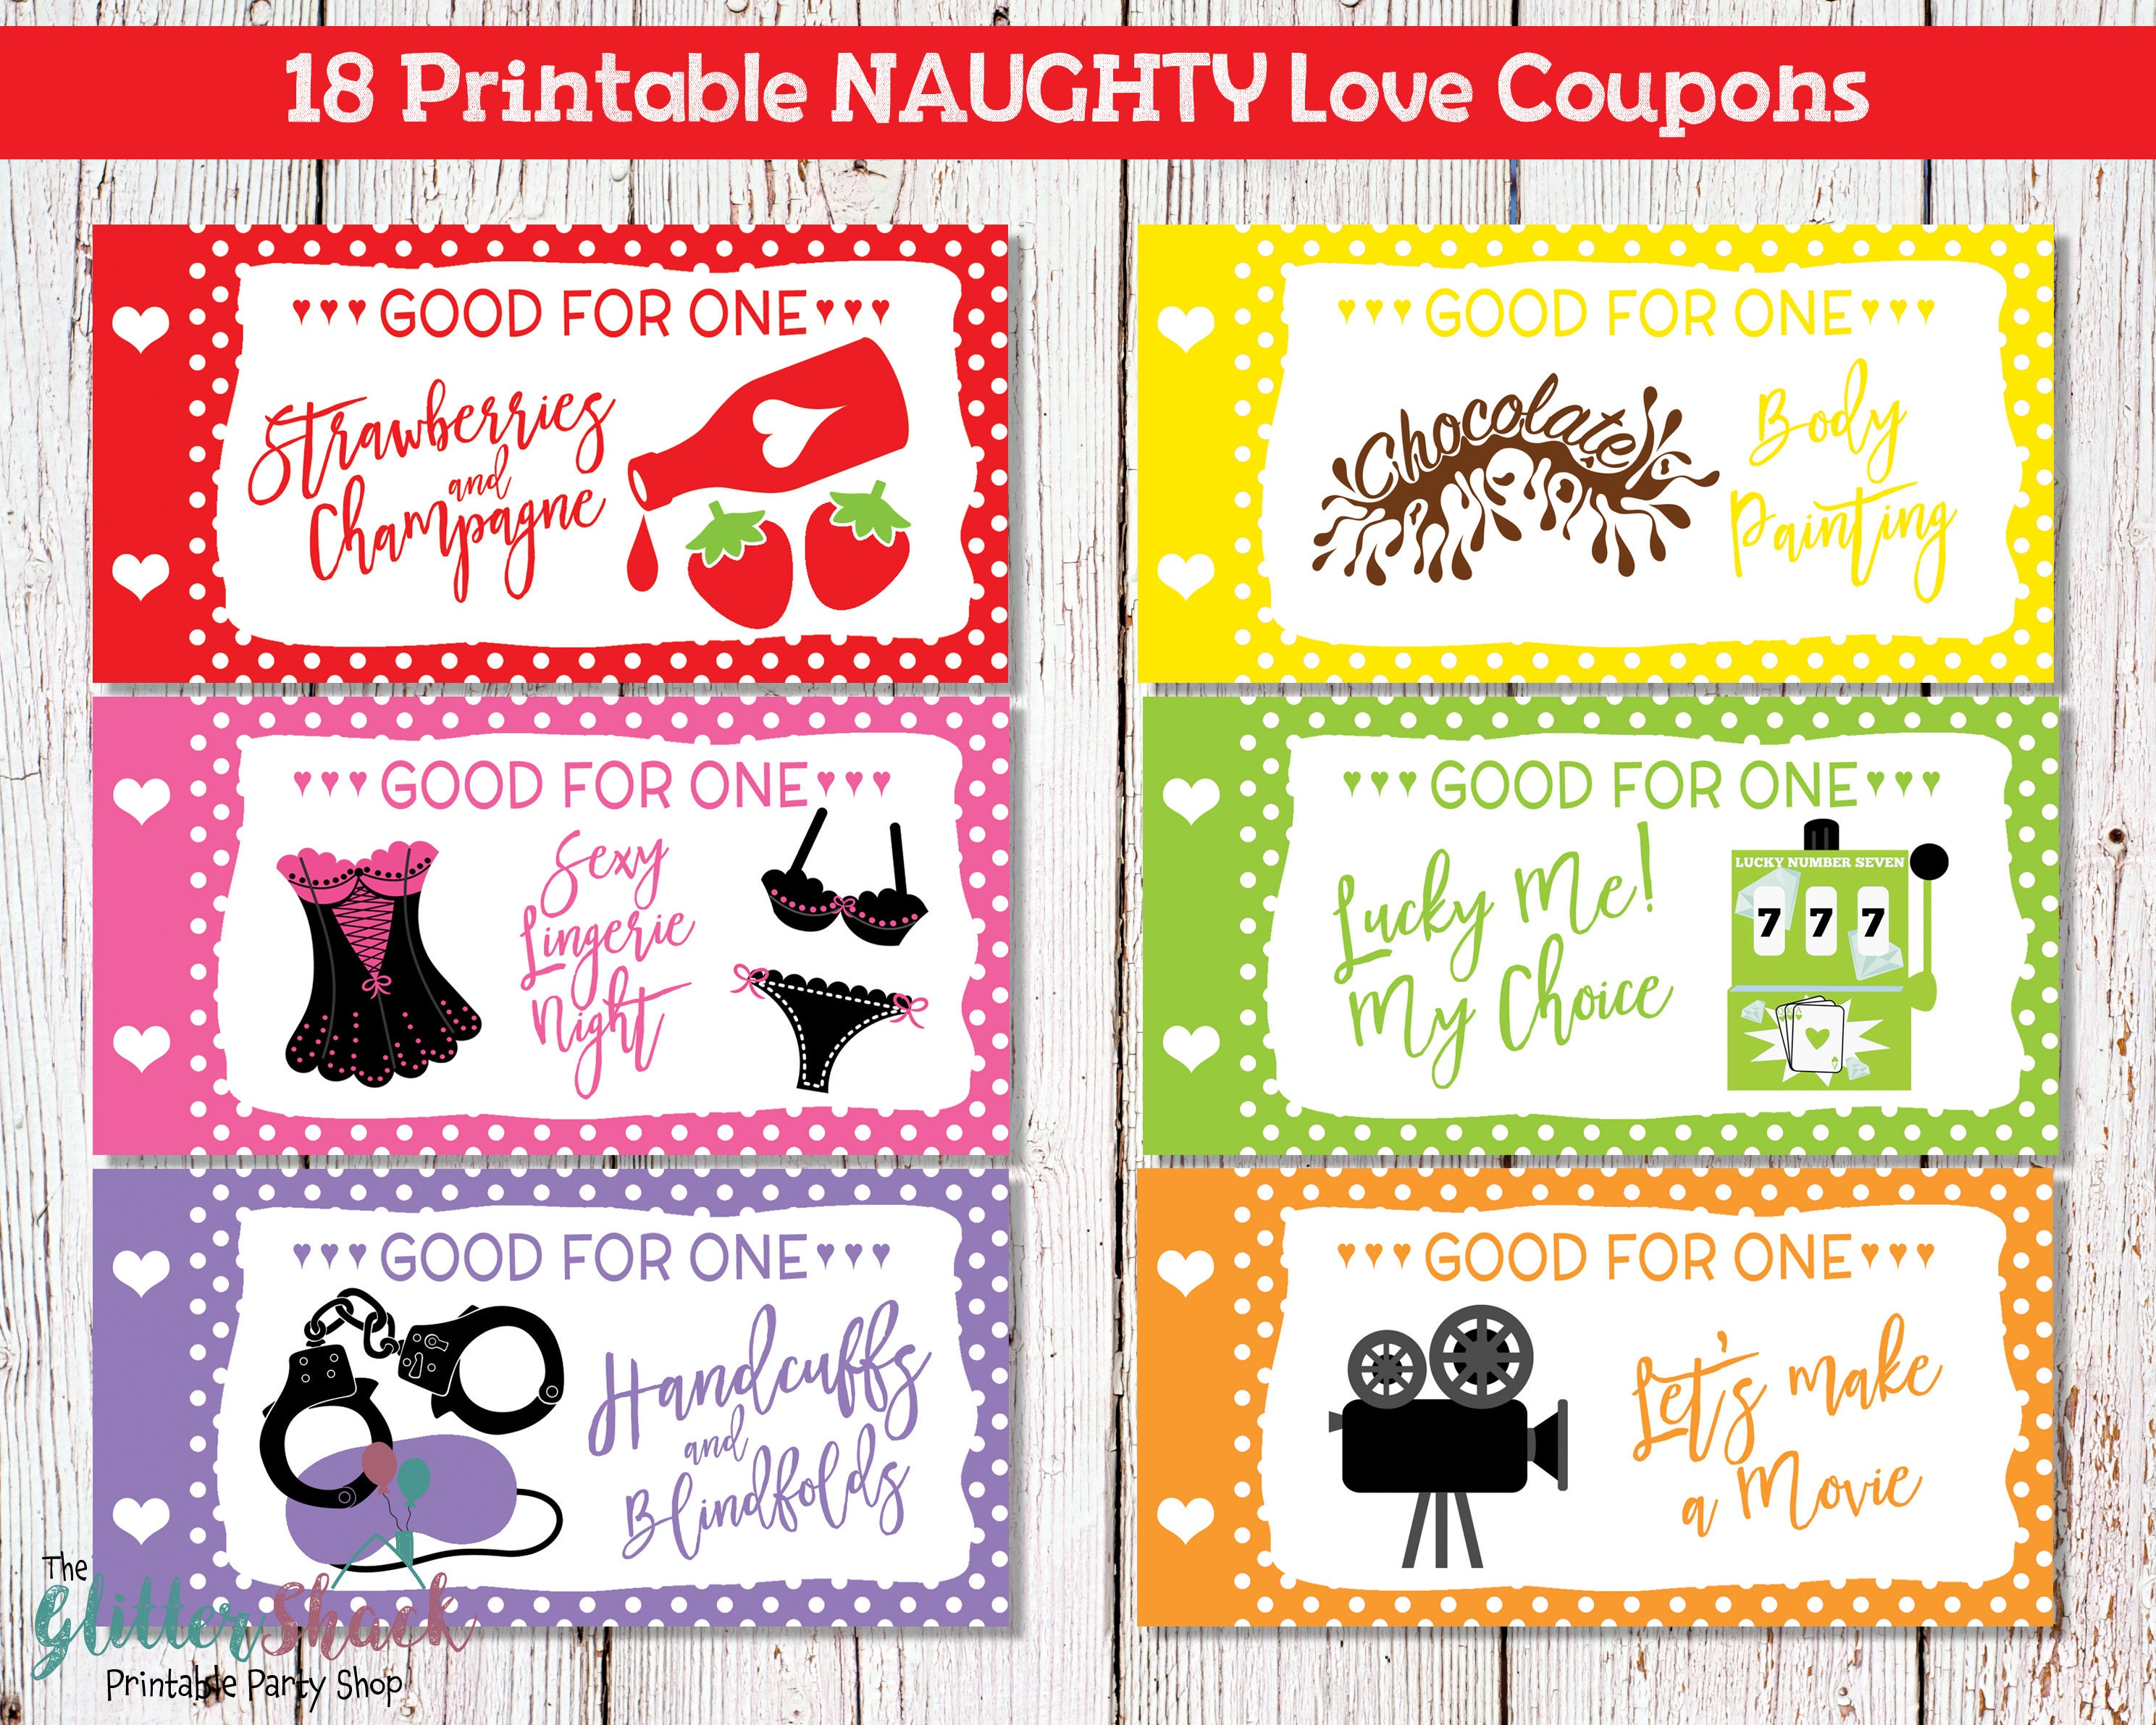 printable naughty love coupons for men husband boyfriend sexy | etsy